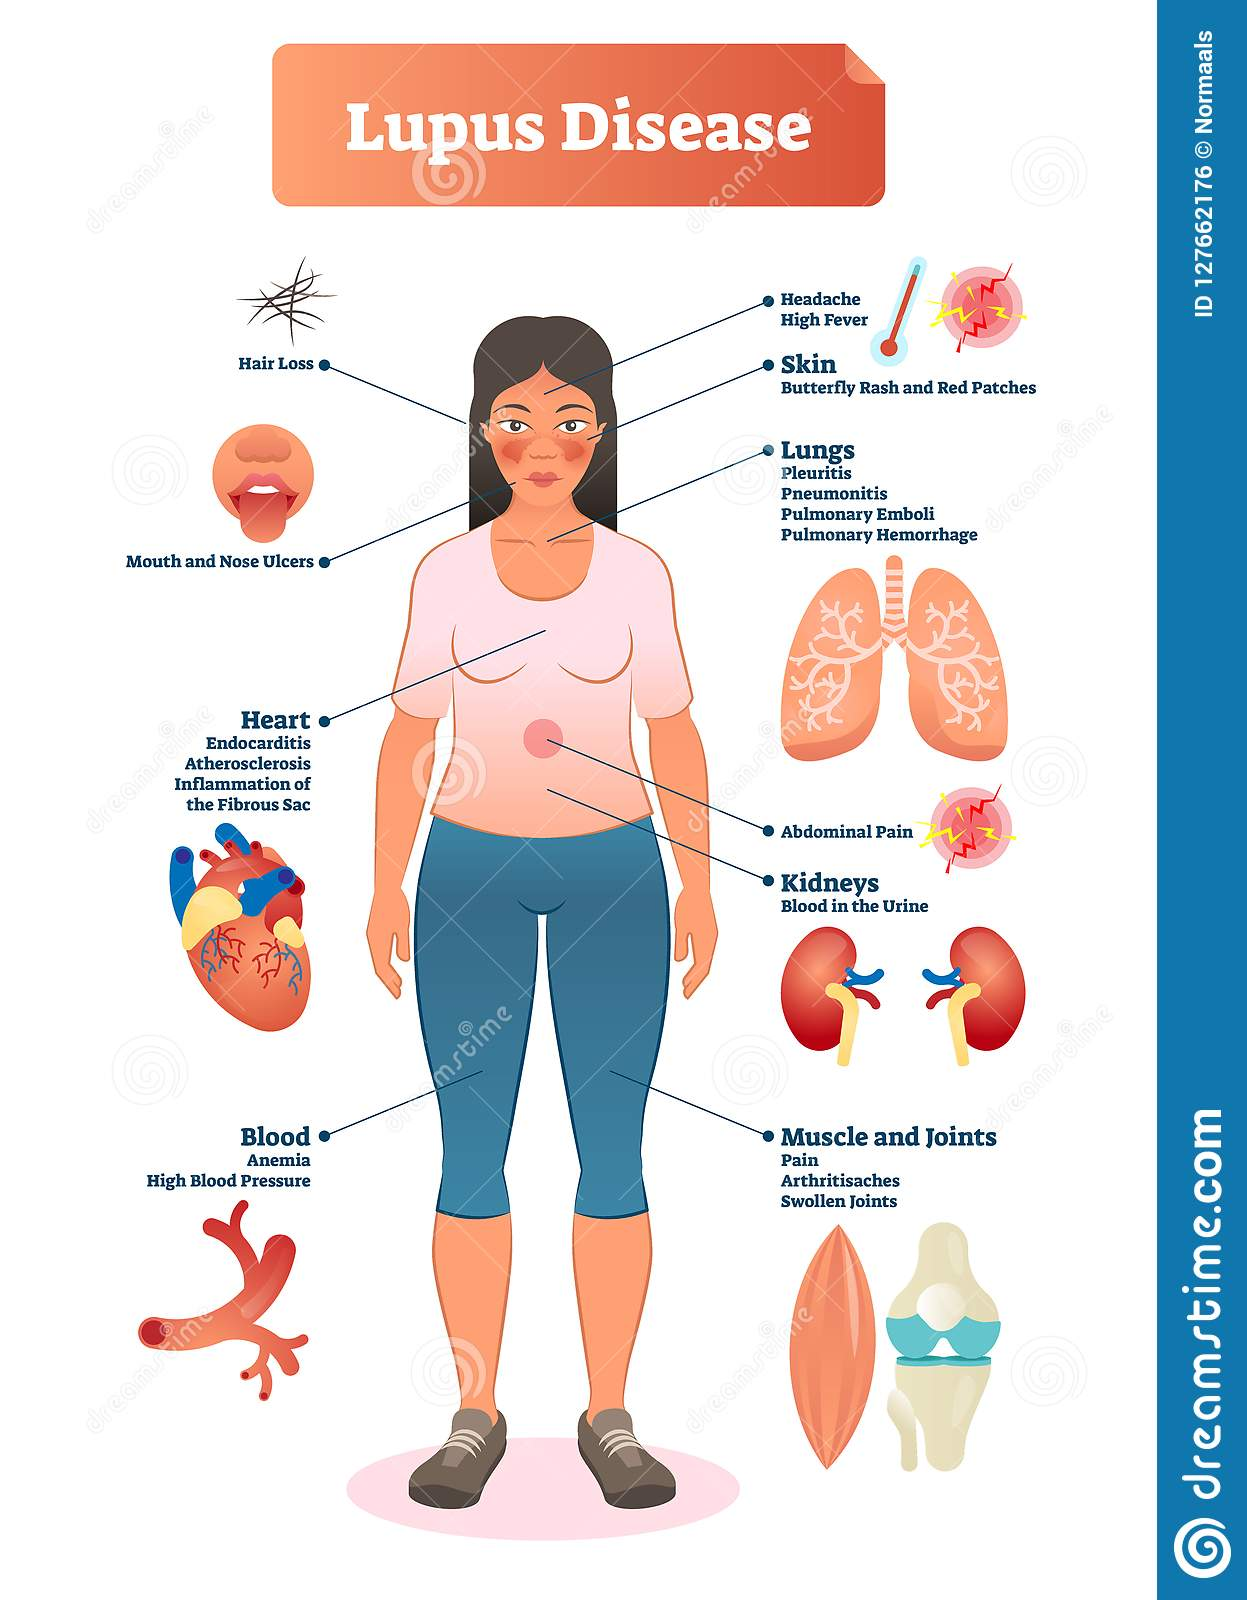 Lupus Disease Vector Illustration  Labeled Diagram With